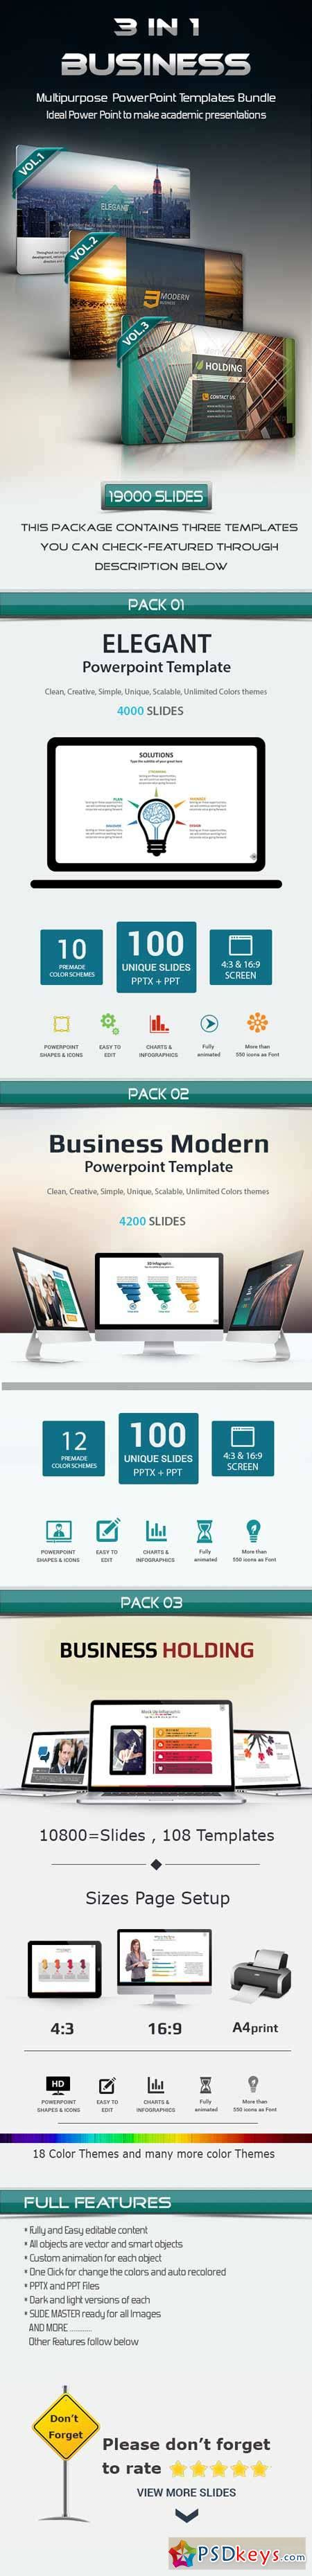 Template Powerpoint 4 In 1 Business Powerpoint Bundle 3 in 1 business powerpoint template bundle 11476898 187 free